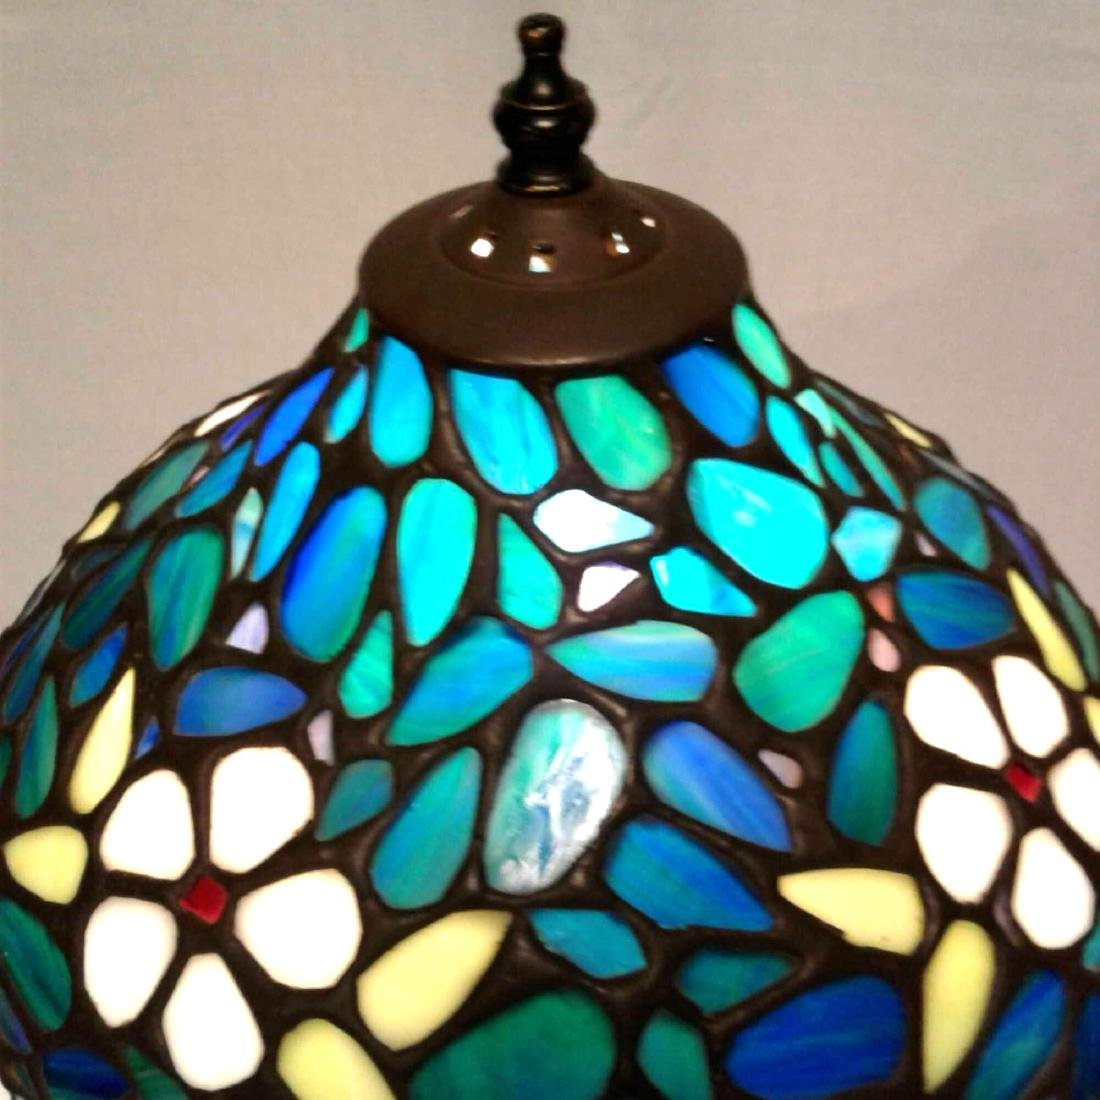 Vintage Stained Glass Brass Table Lamp - 4